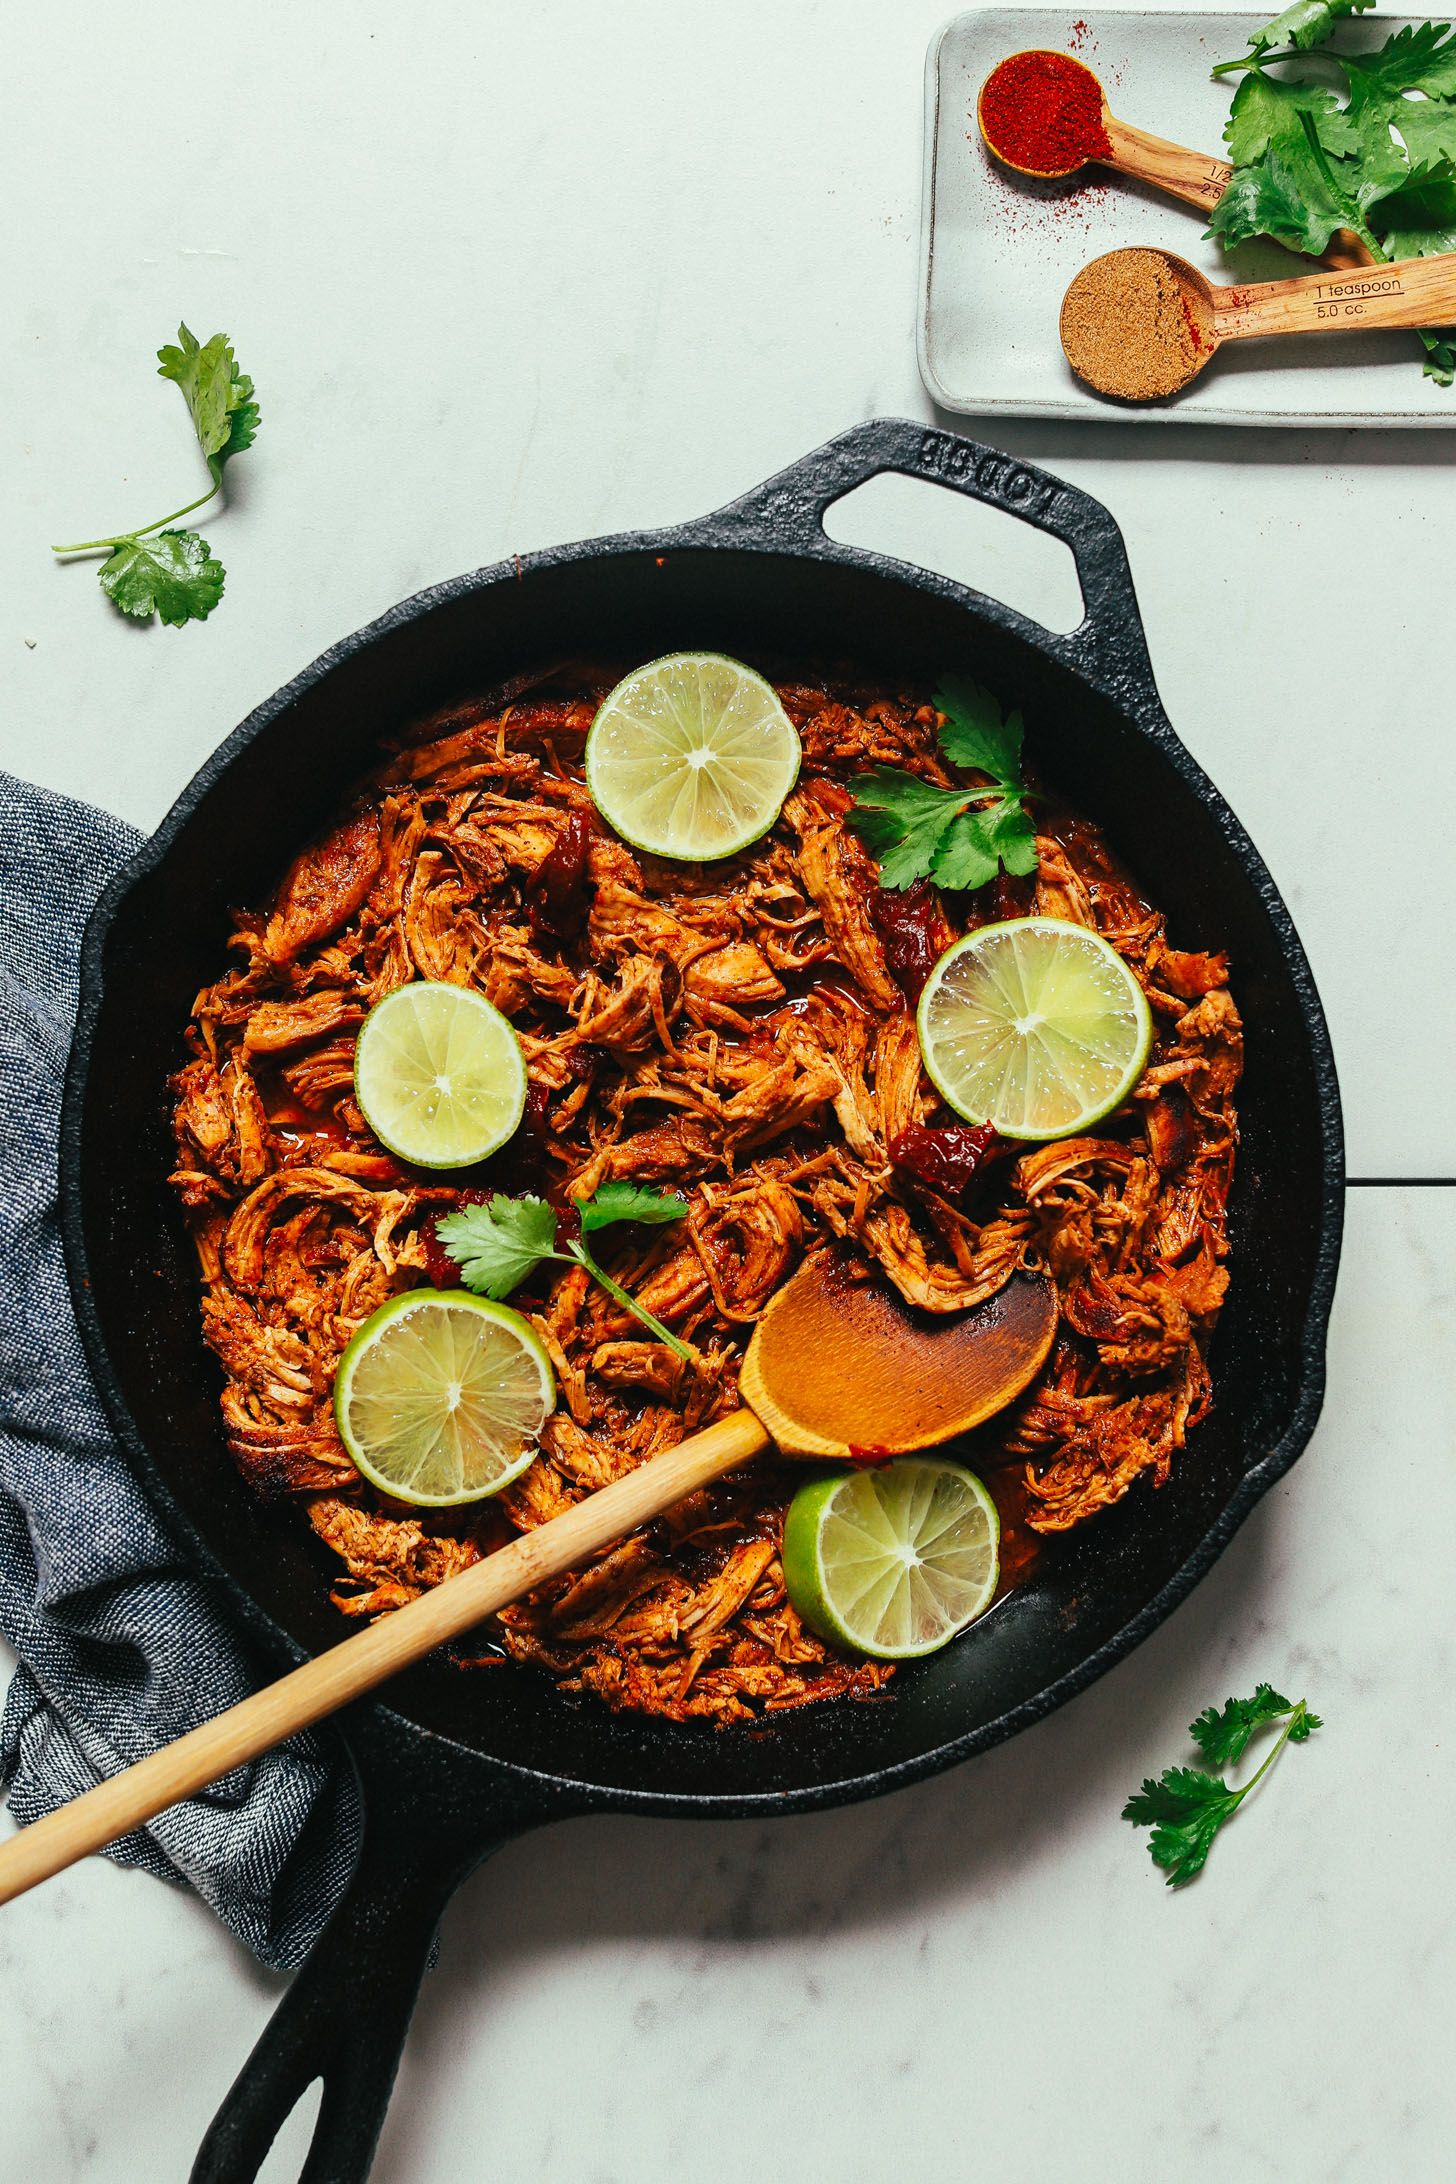 1-Pan Mexican Shredded Chicken #mexicanchickentacos